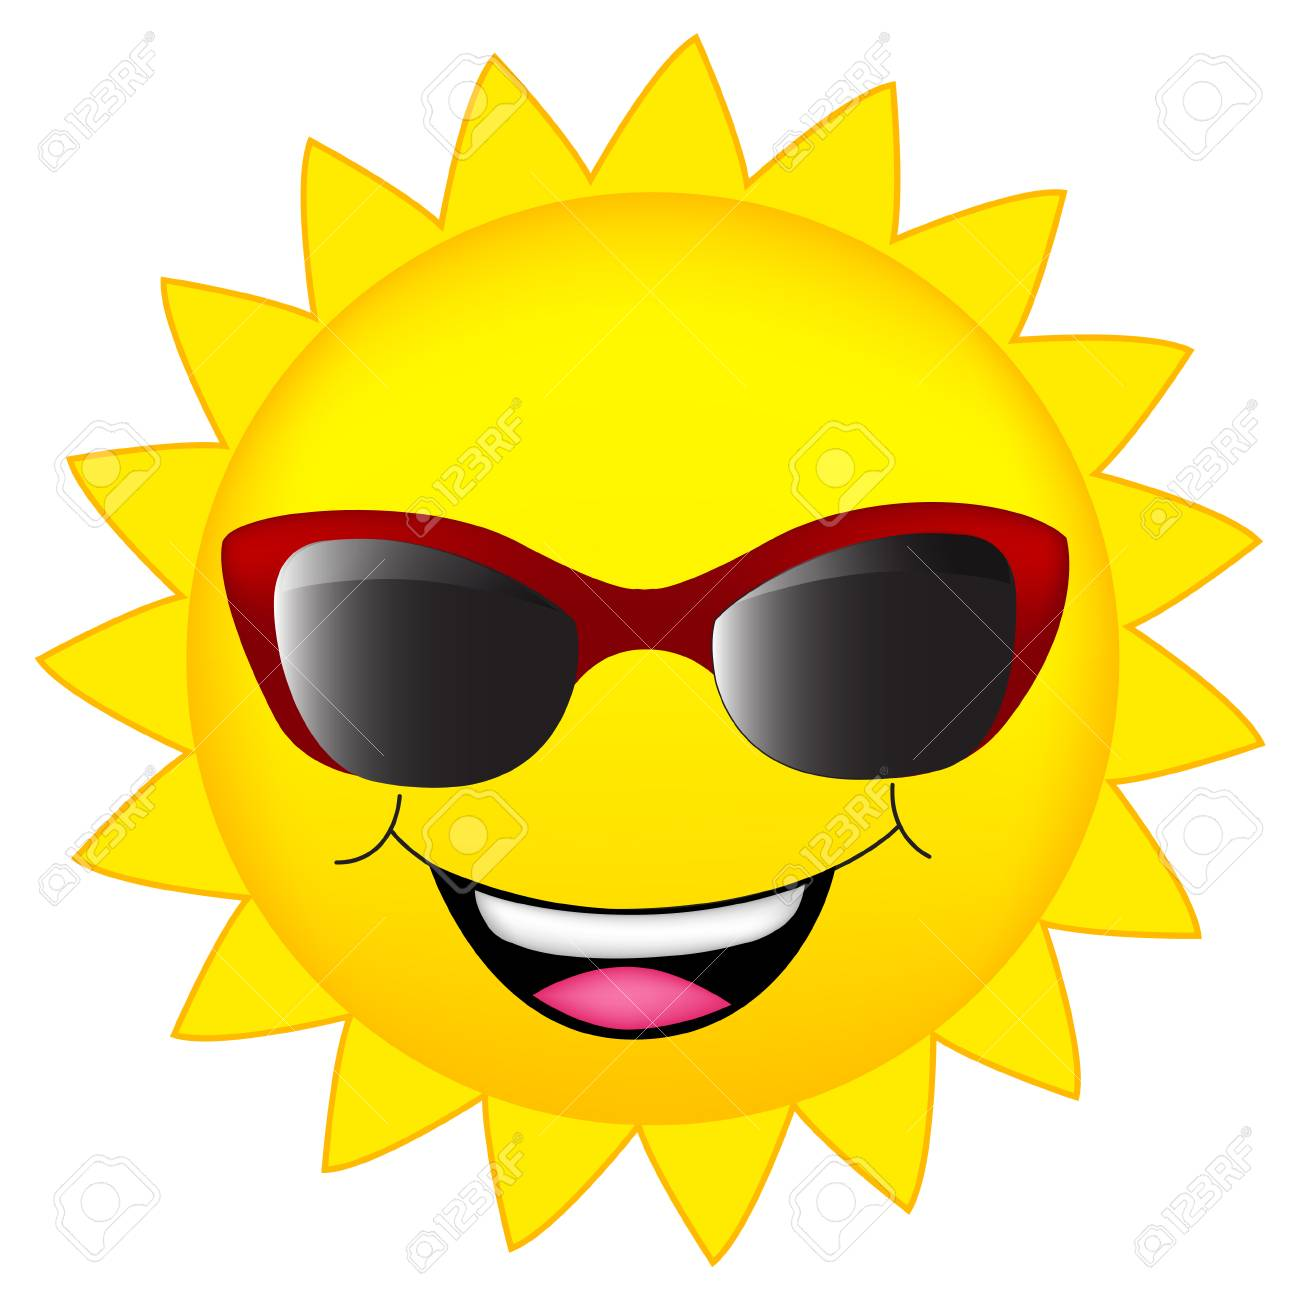 happy sun wearing sunglasses clipart isolated on white royalty free rh 123rf com sun with shades clipart cliparts sunglasses